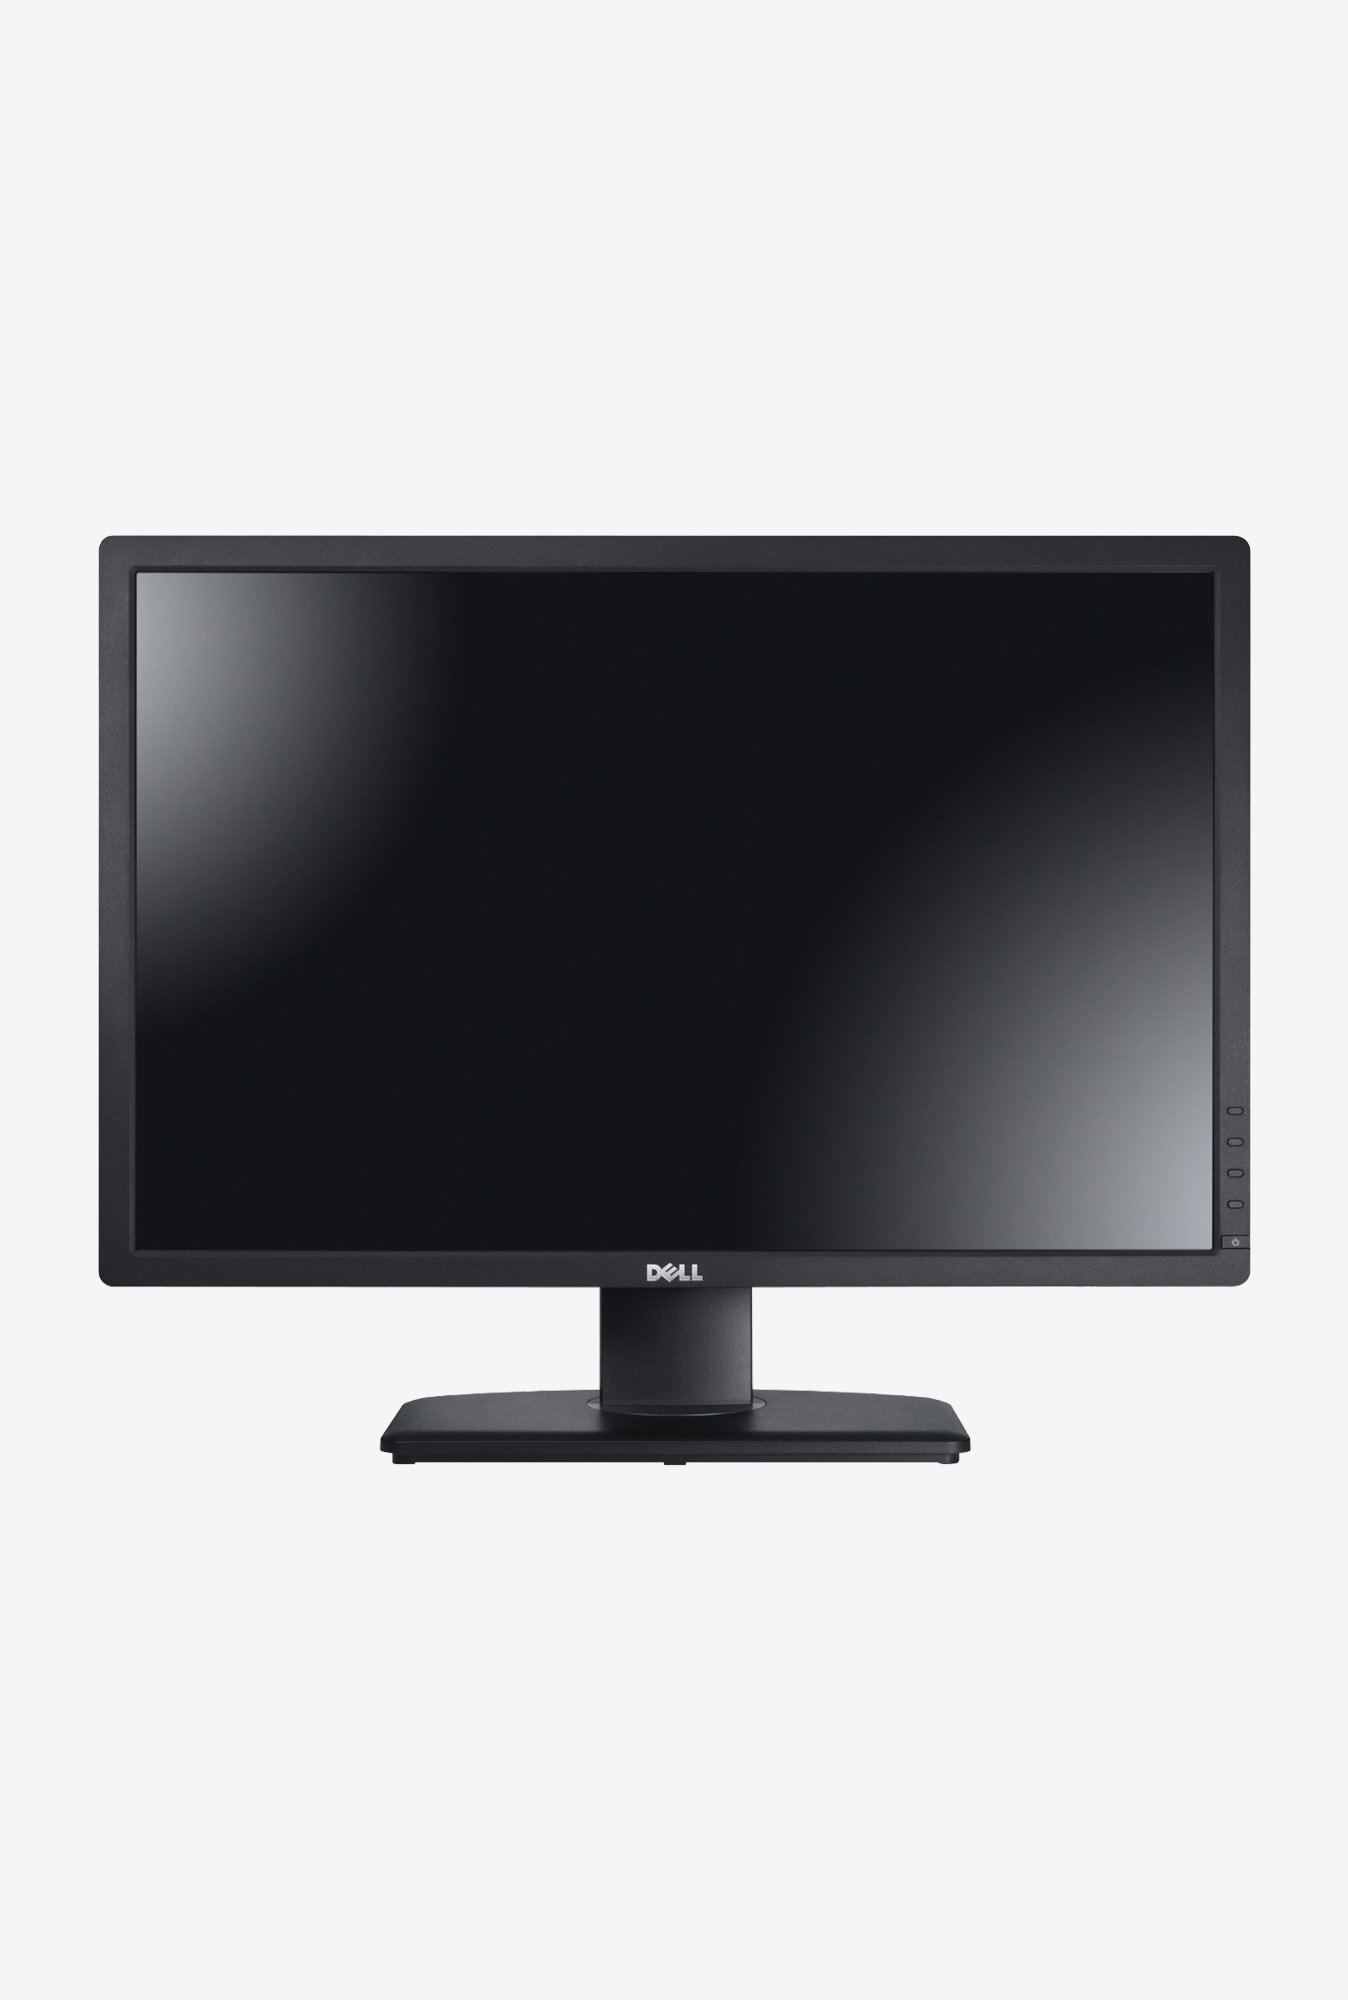 Dell U2412M 24 inch LED Desktop Monitor (Black)